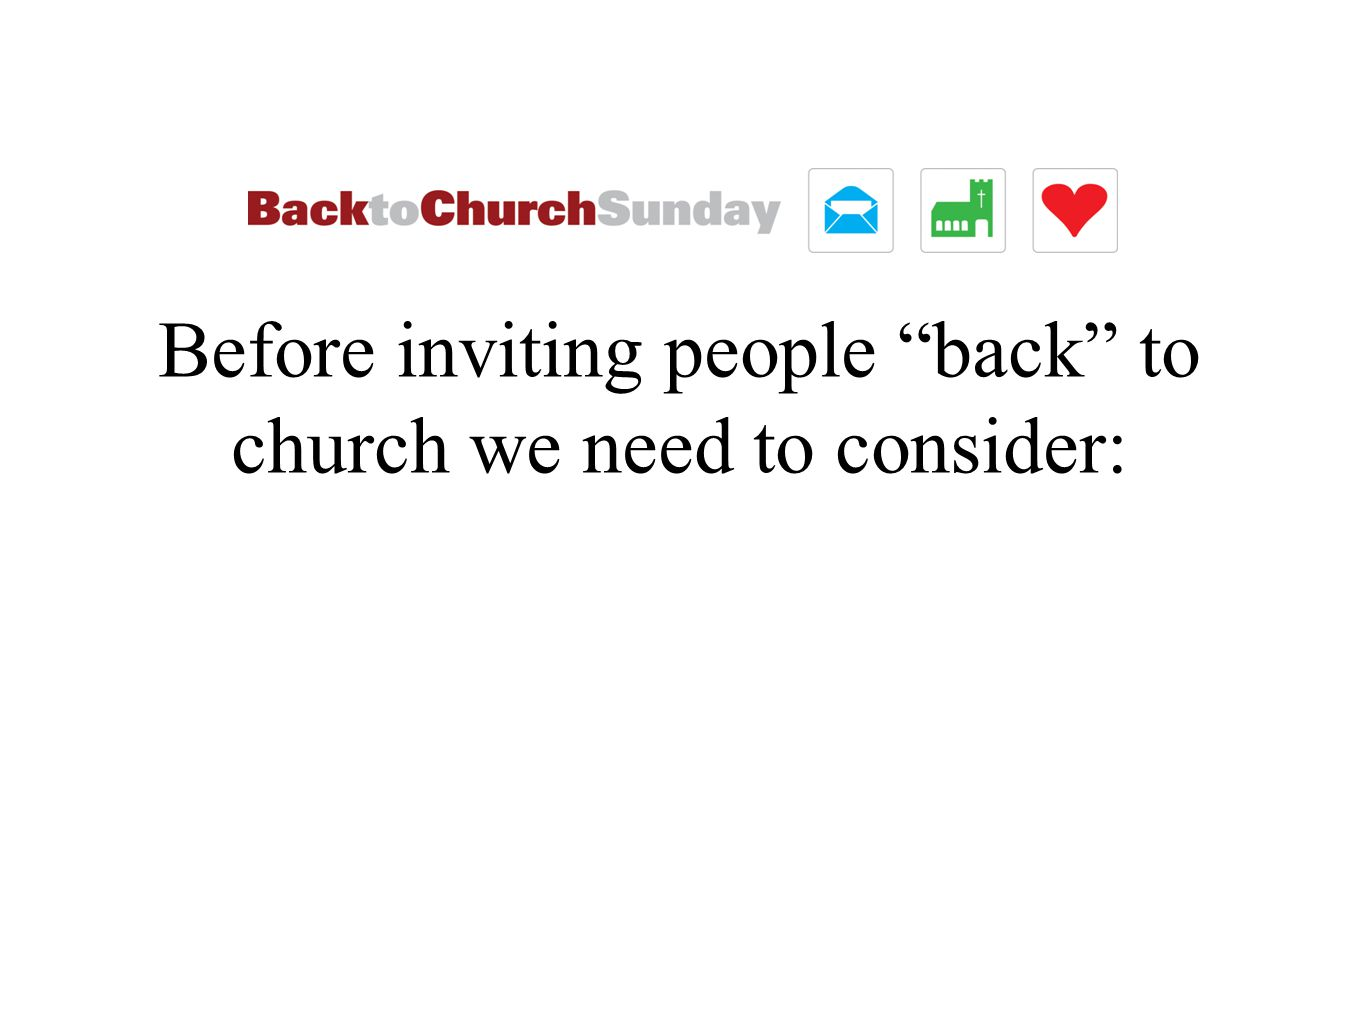 Before inviting people back to church we need to consider: